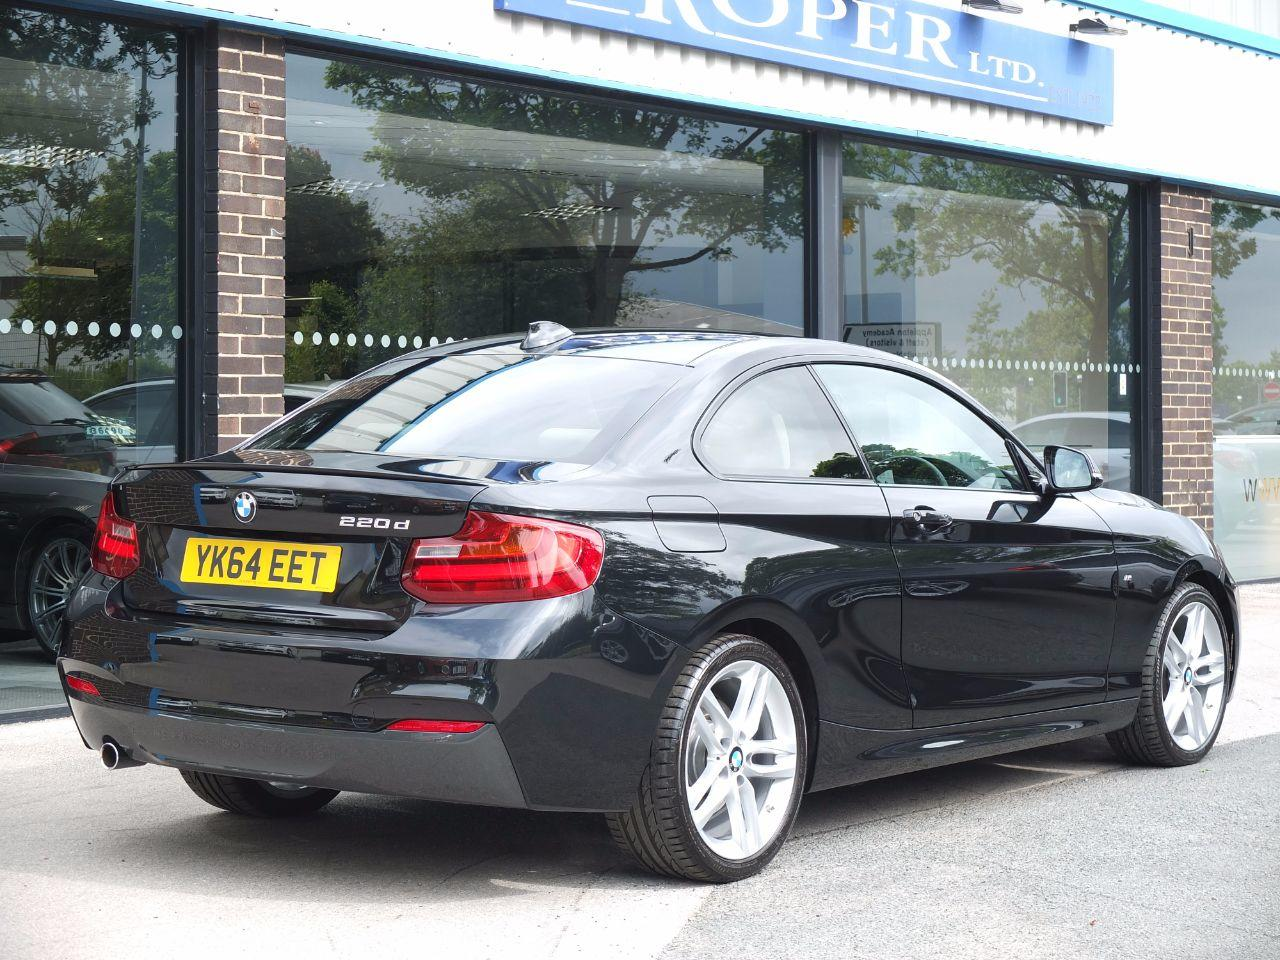 BMW 2 Series 2.0 220d M Sport Coupe Auto, Pro Media, Leather++ Coupe Diesel Black Sapphire Metallic